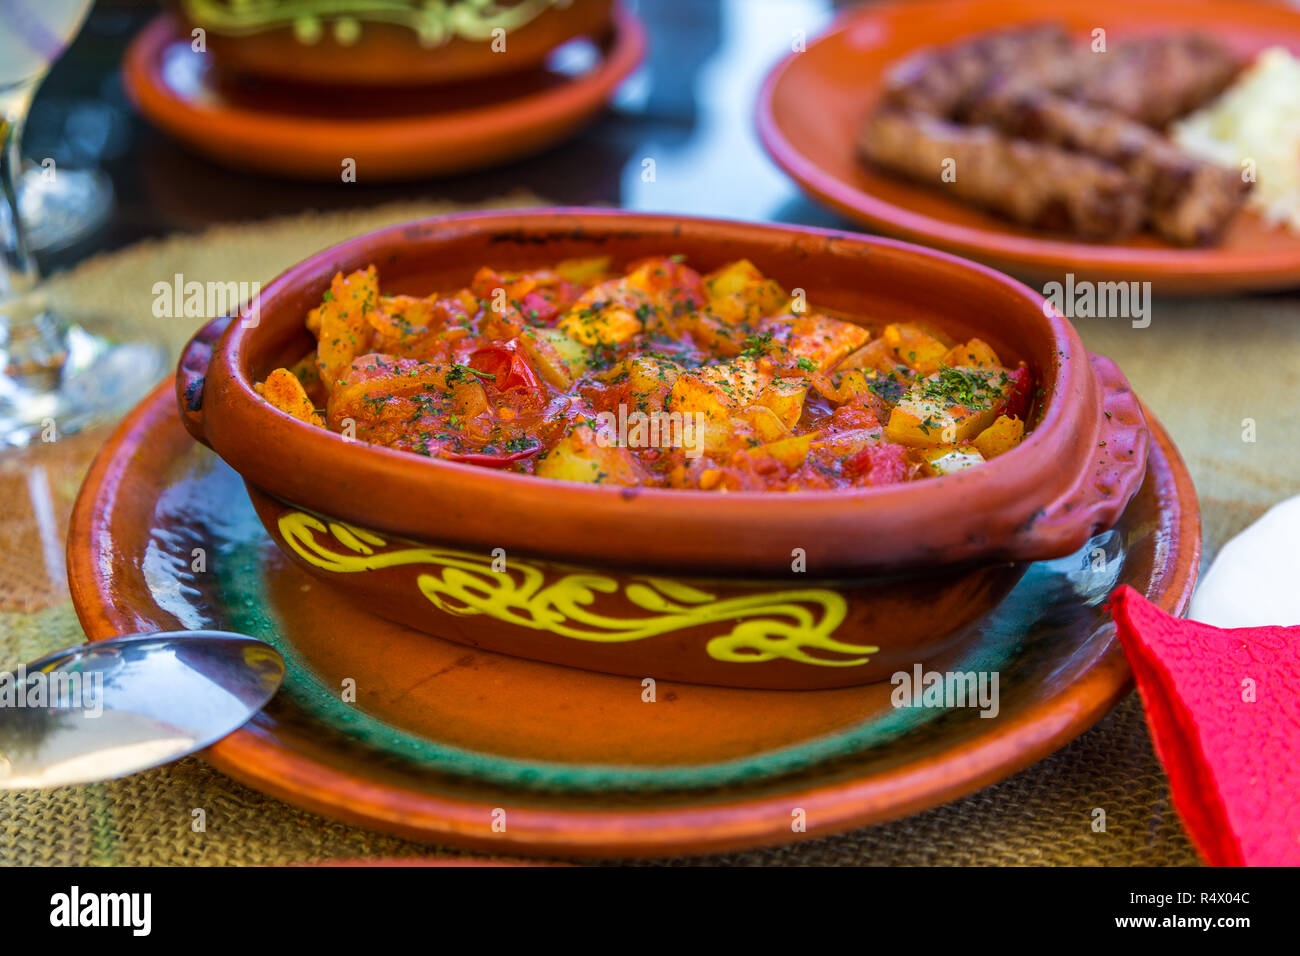 Balkan vegetable stew served in a traditional food clay dish. Zlatibor, Serbia. - Stock Image